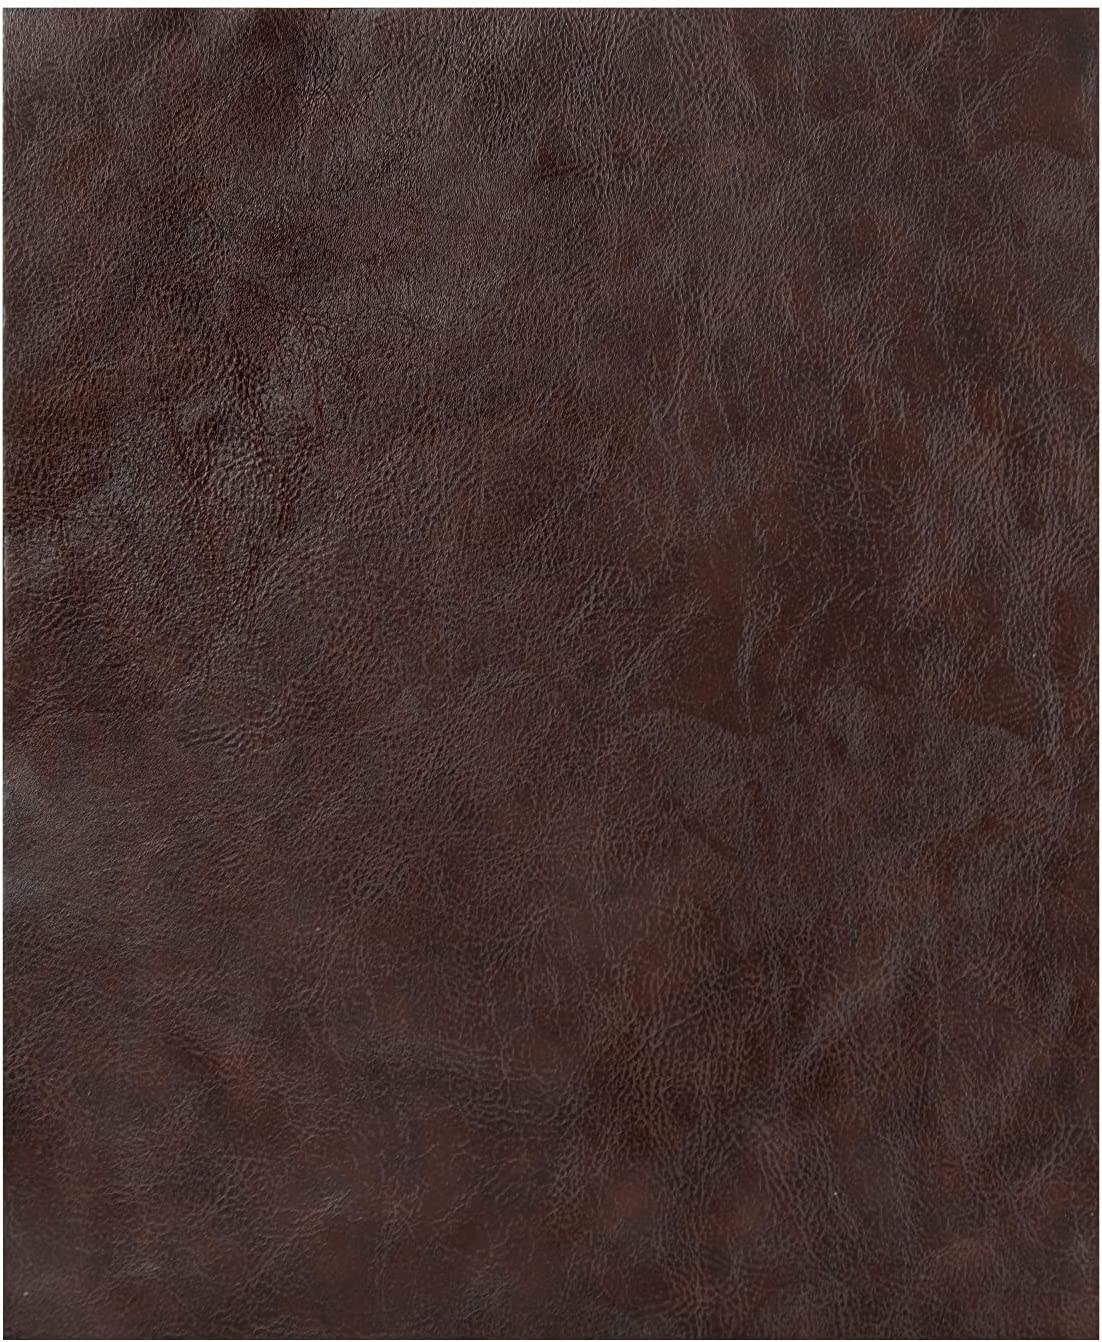 Leather Repair Patch 10 x 12 Inches, 75 Colors Available, Self-Adhesive Leather Tape for Couches, Chairs, Car Seats, Bags, Jackets (Crazy Horse)